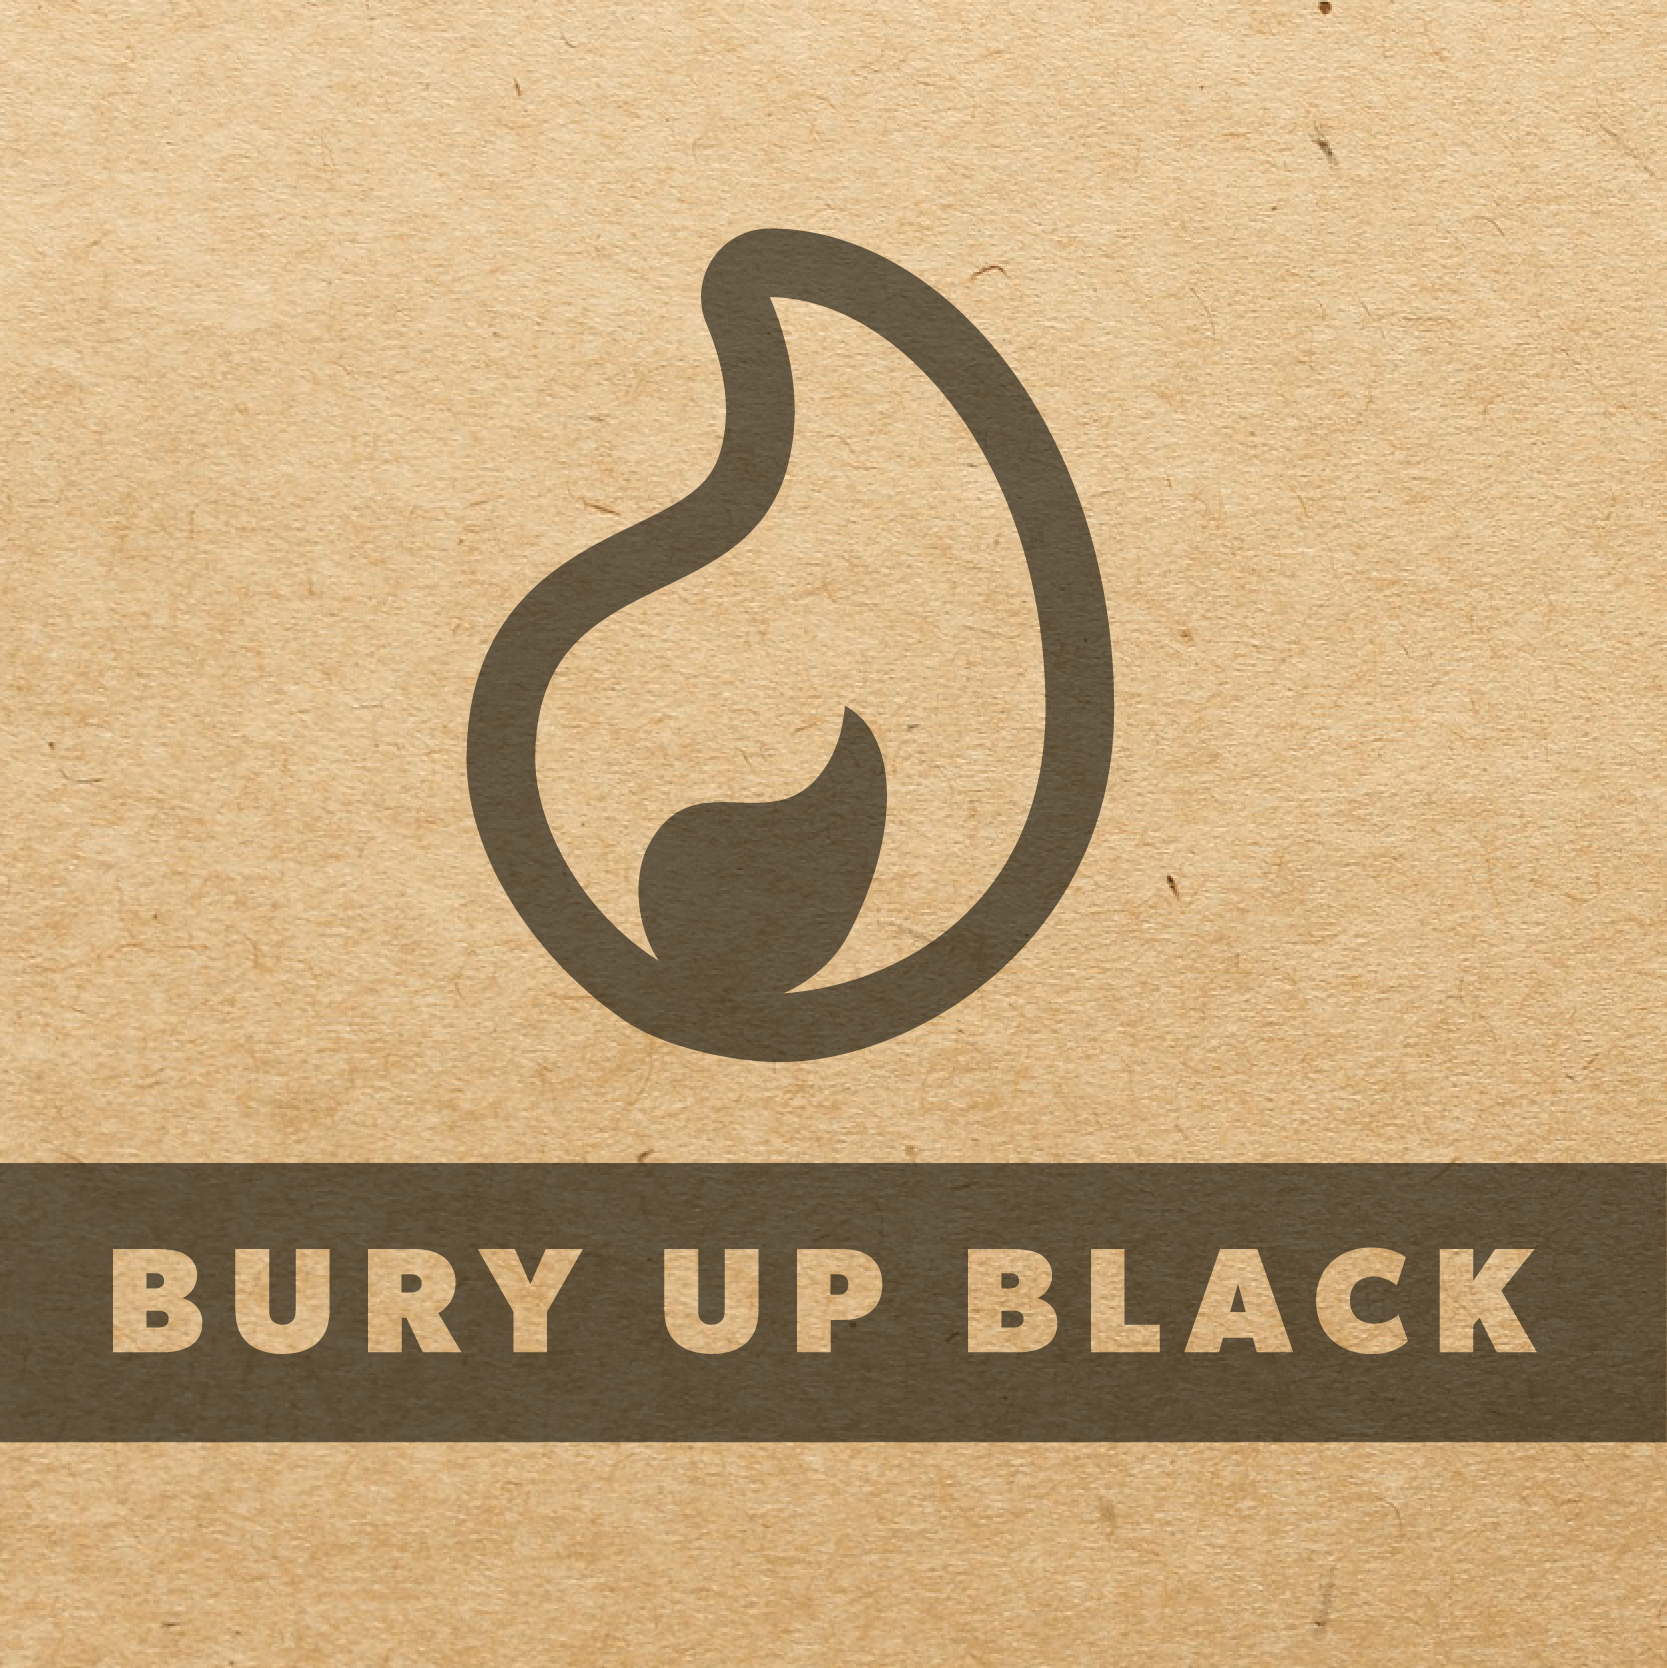 Bury Up Black from Fire Grounds Coffee